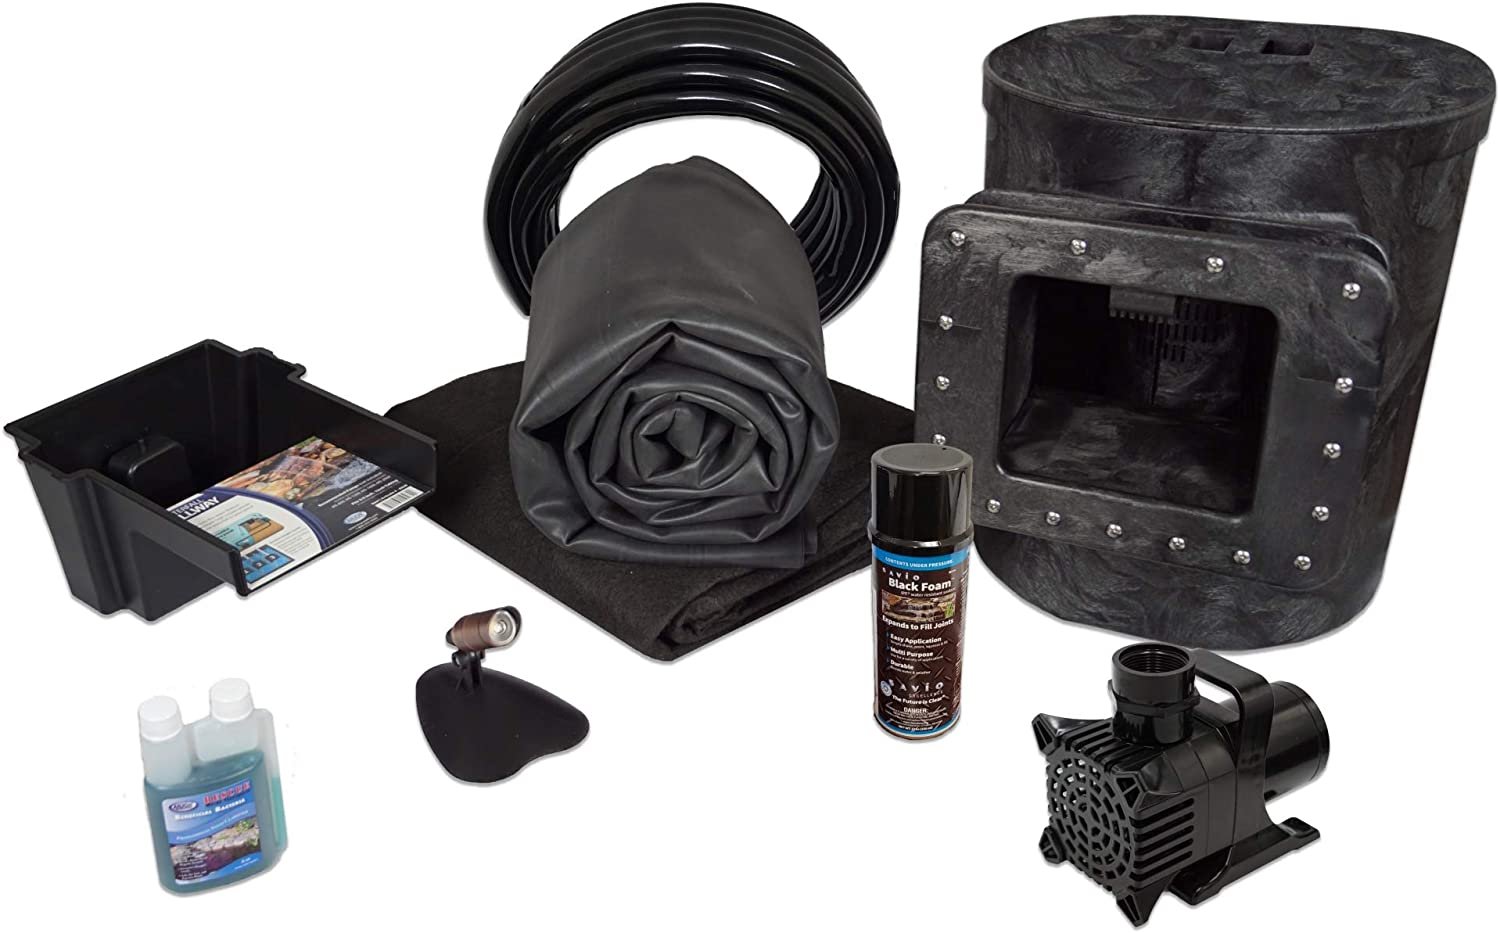 HALF OFF PONDS - Simply Ponds 1200 Water Garden and Pond Kit with 10 Foot x 10 Foot EPDM Liner - X8-2